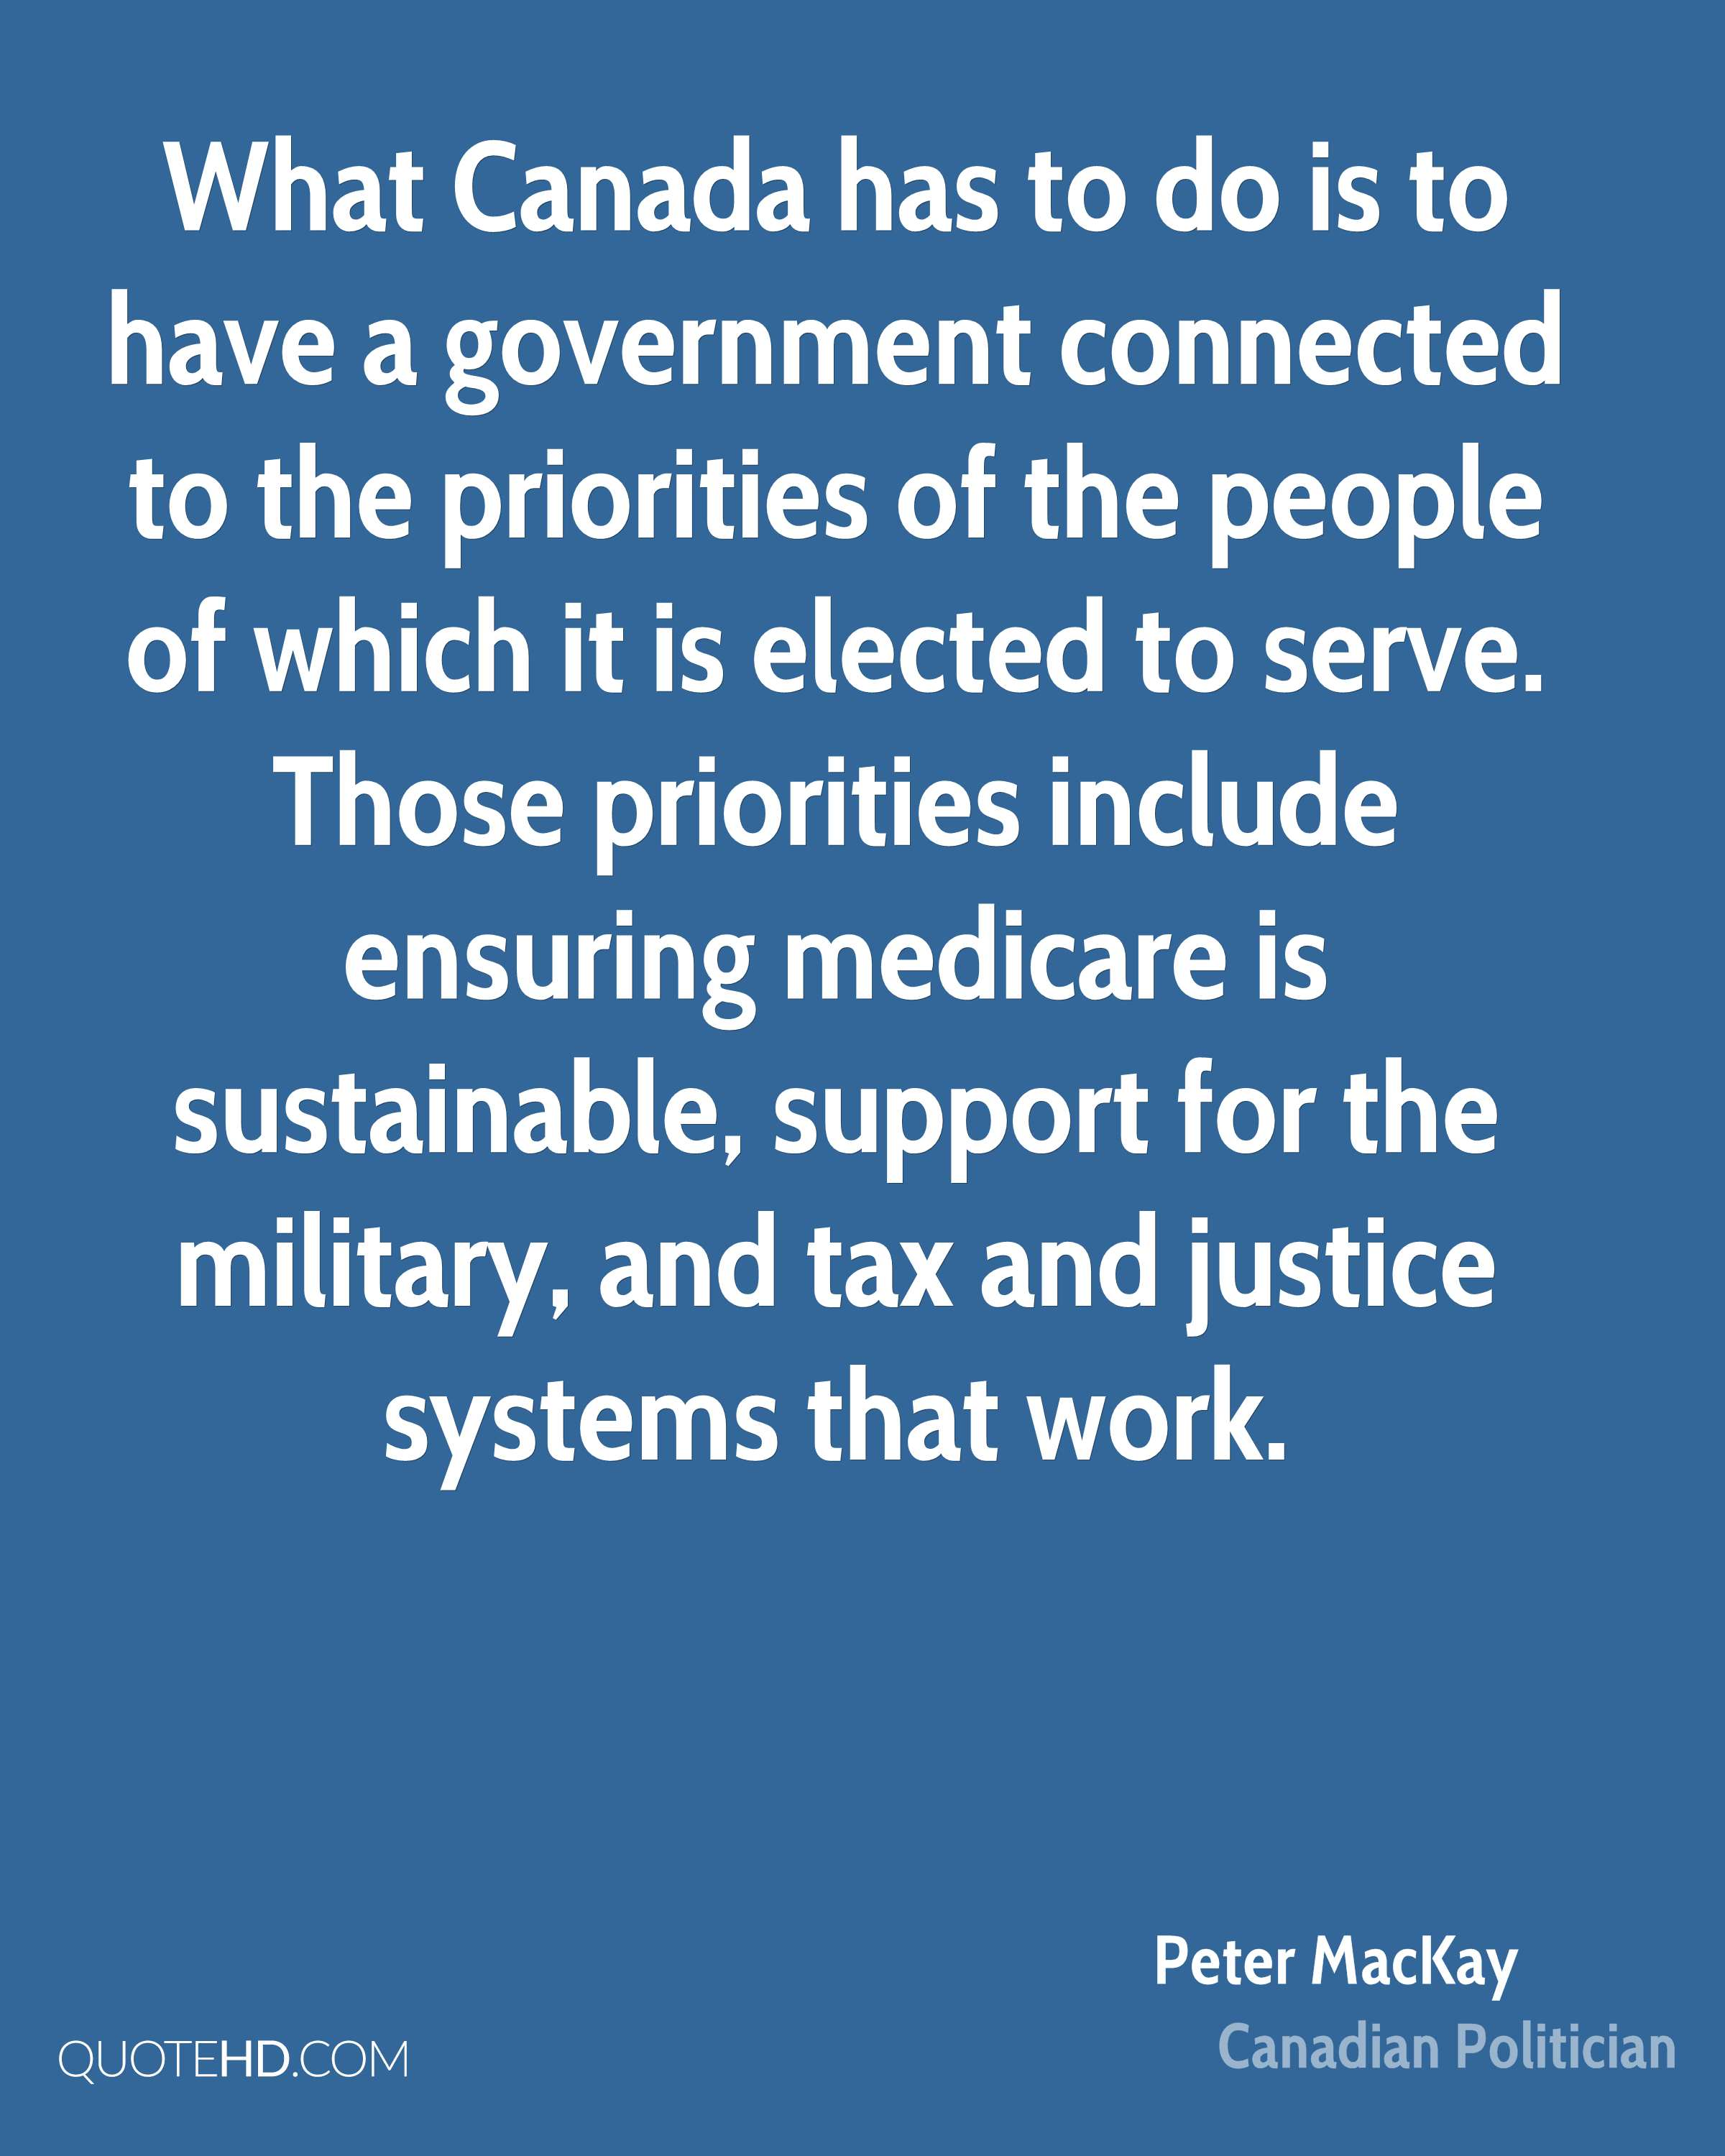 What Canada has to do is to have a government connected to the priorities of the people of which it is elected to serve. Those priorities include ensuring medicare is sustainable, support for the military, and tax and justice systems that work.